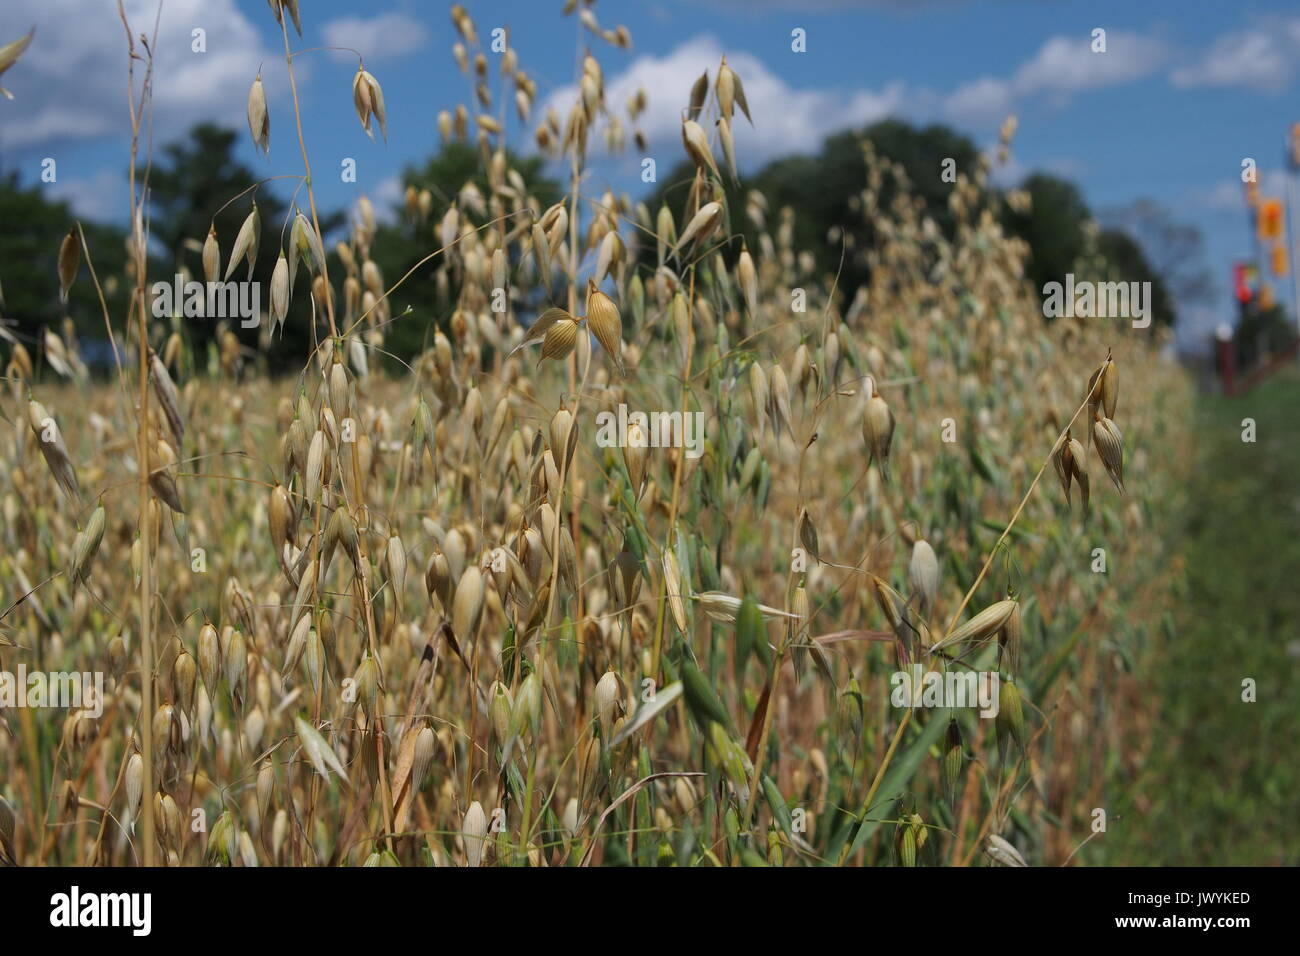 Oat field at the Central Experimental Farm (CEF), Ottawa, Ontario, Canada. - Stock Image